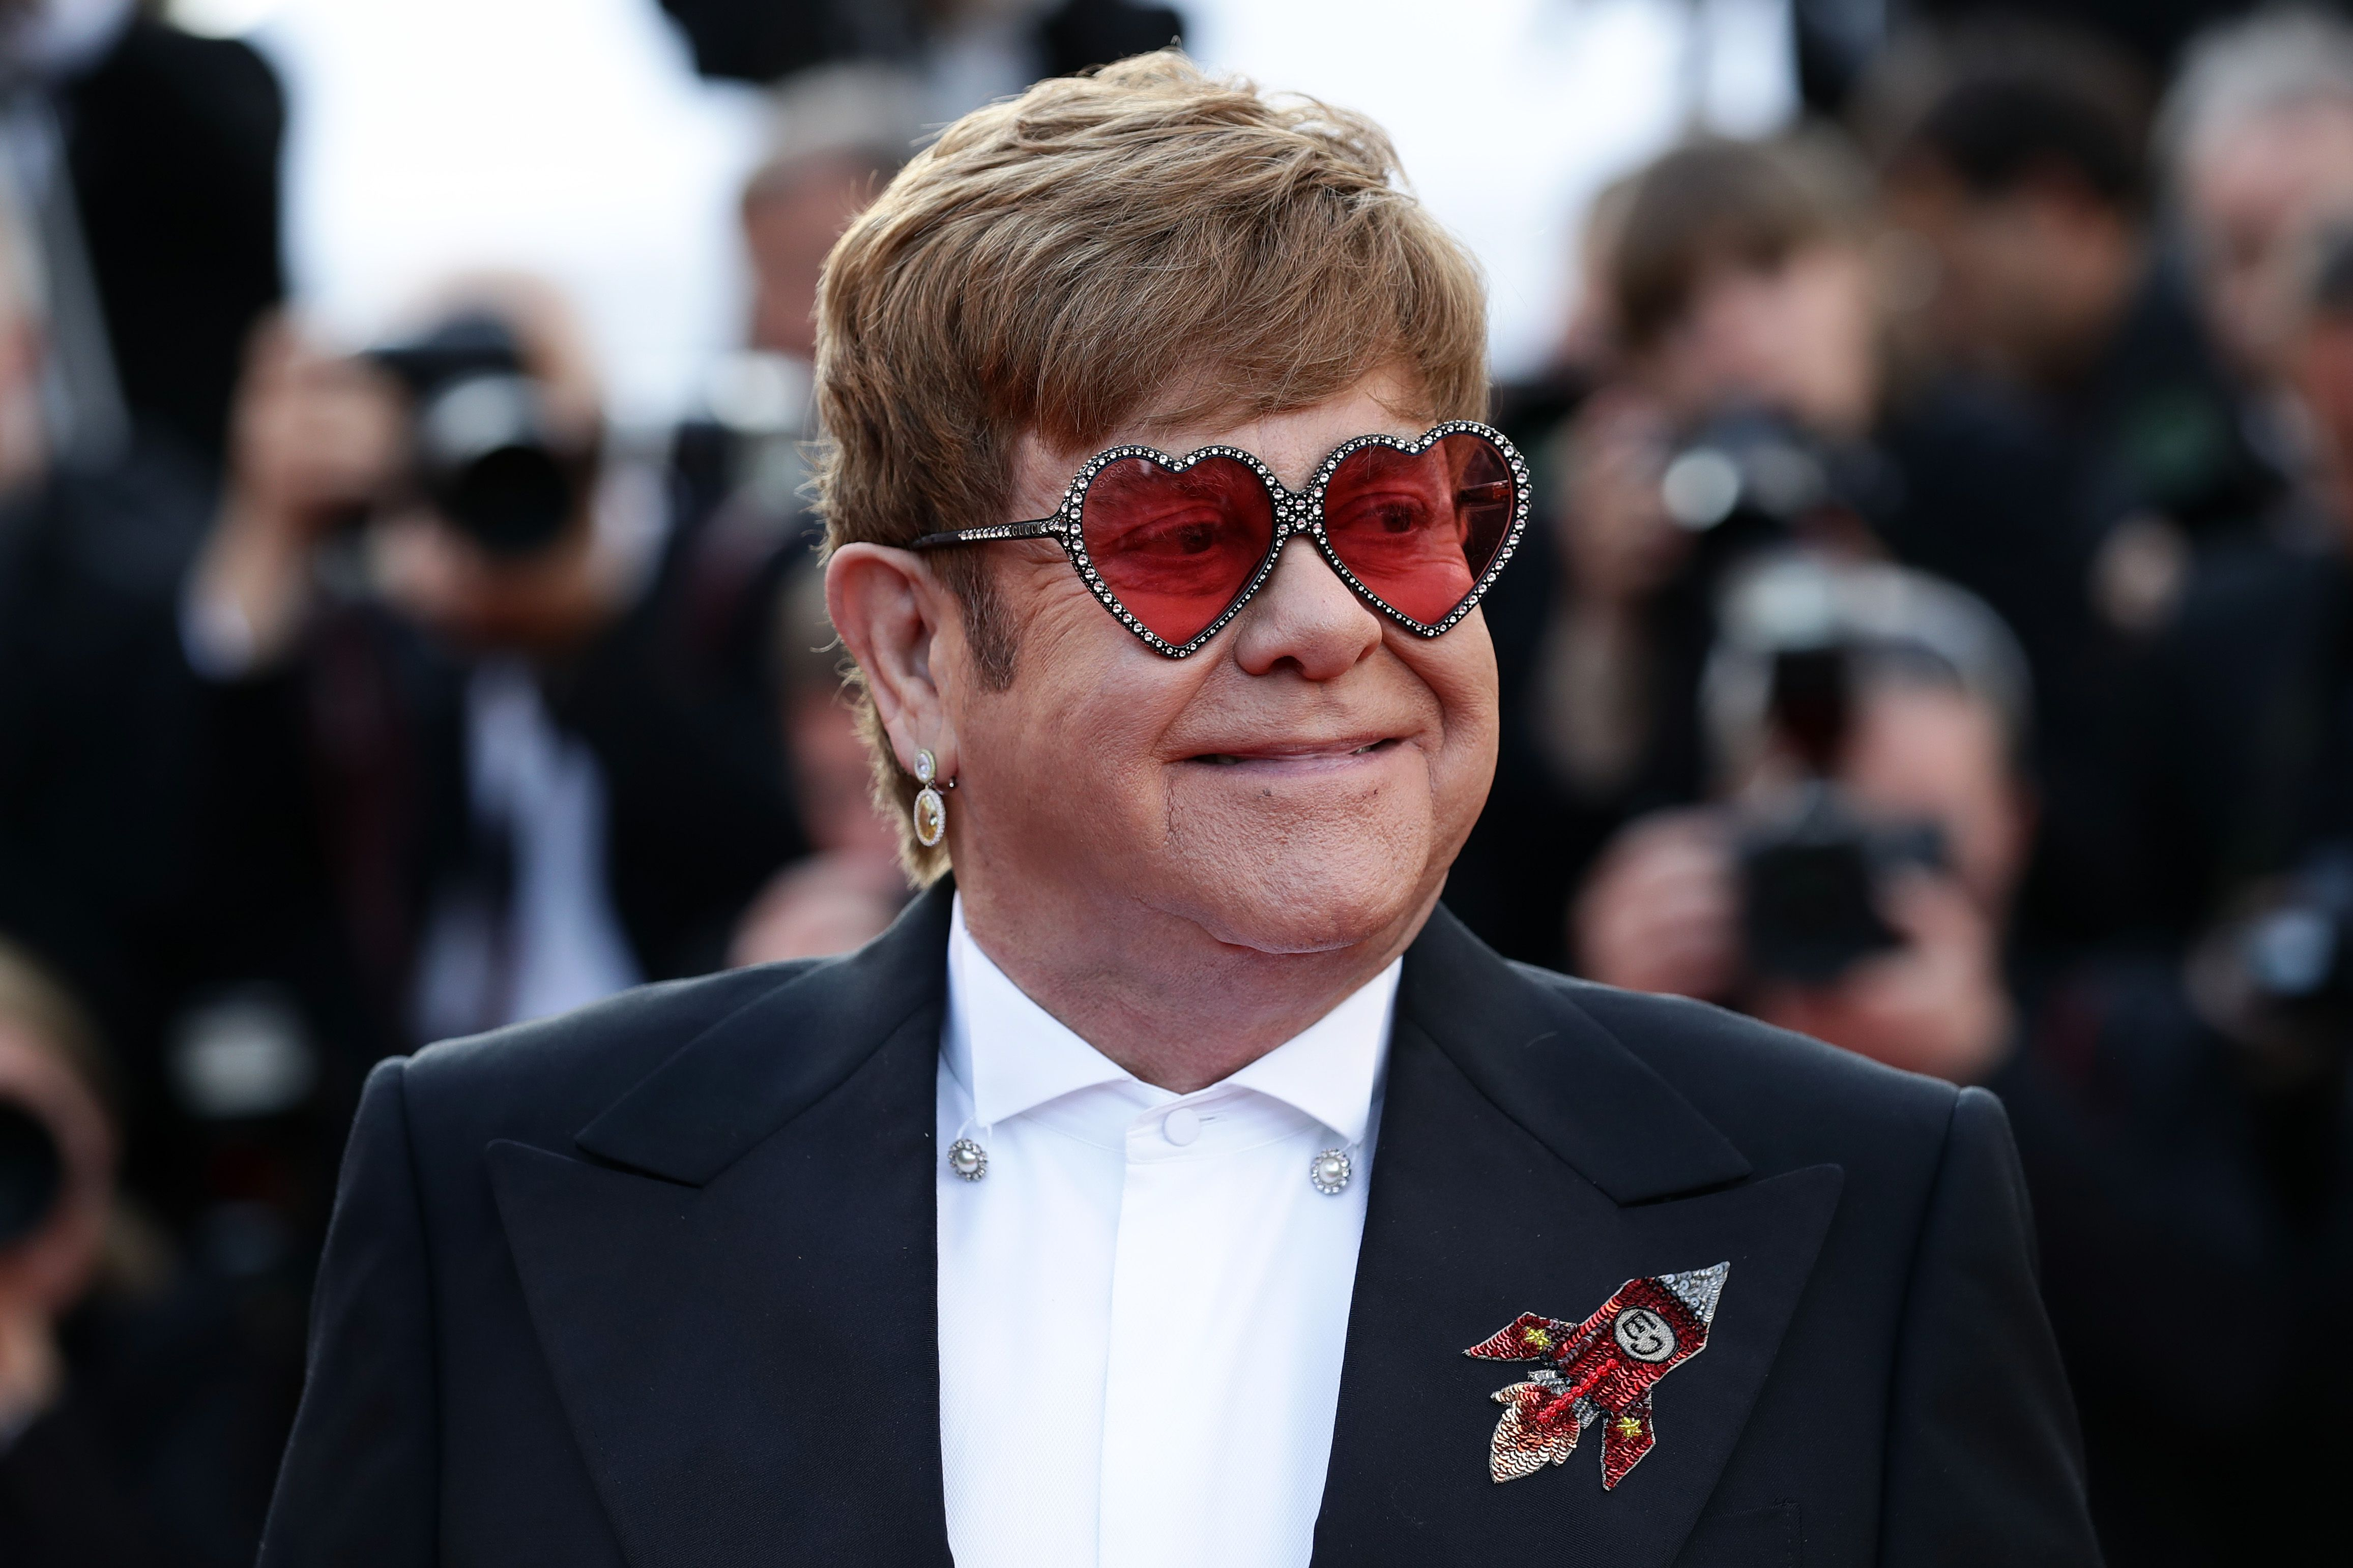 """Sir Elton John at the screening of """"Rocketman"""" during the 72nd annual Cannes Film Festival in Cannes, France 